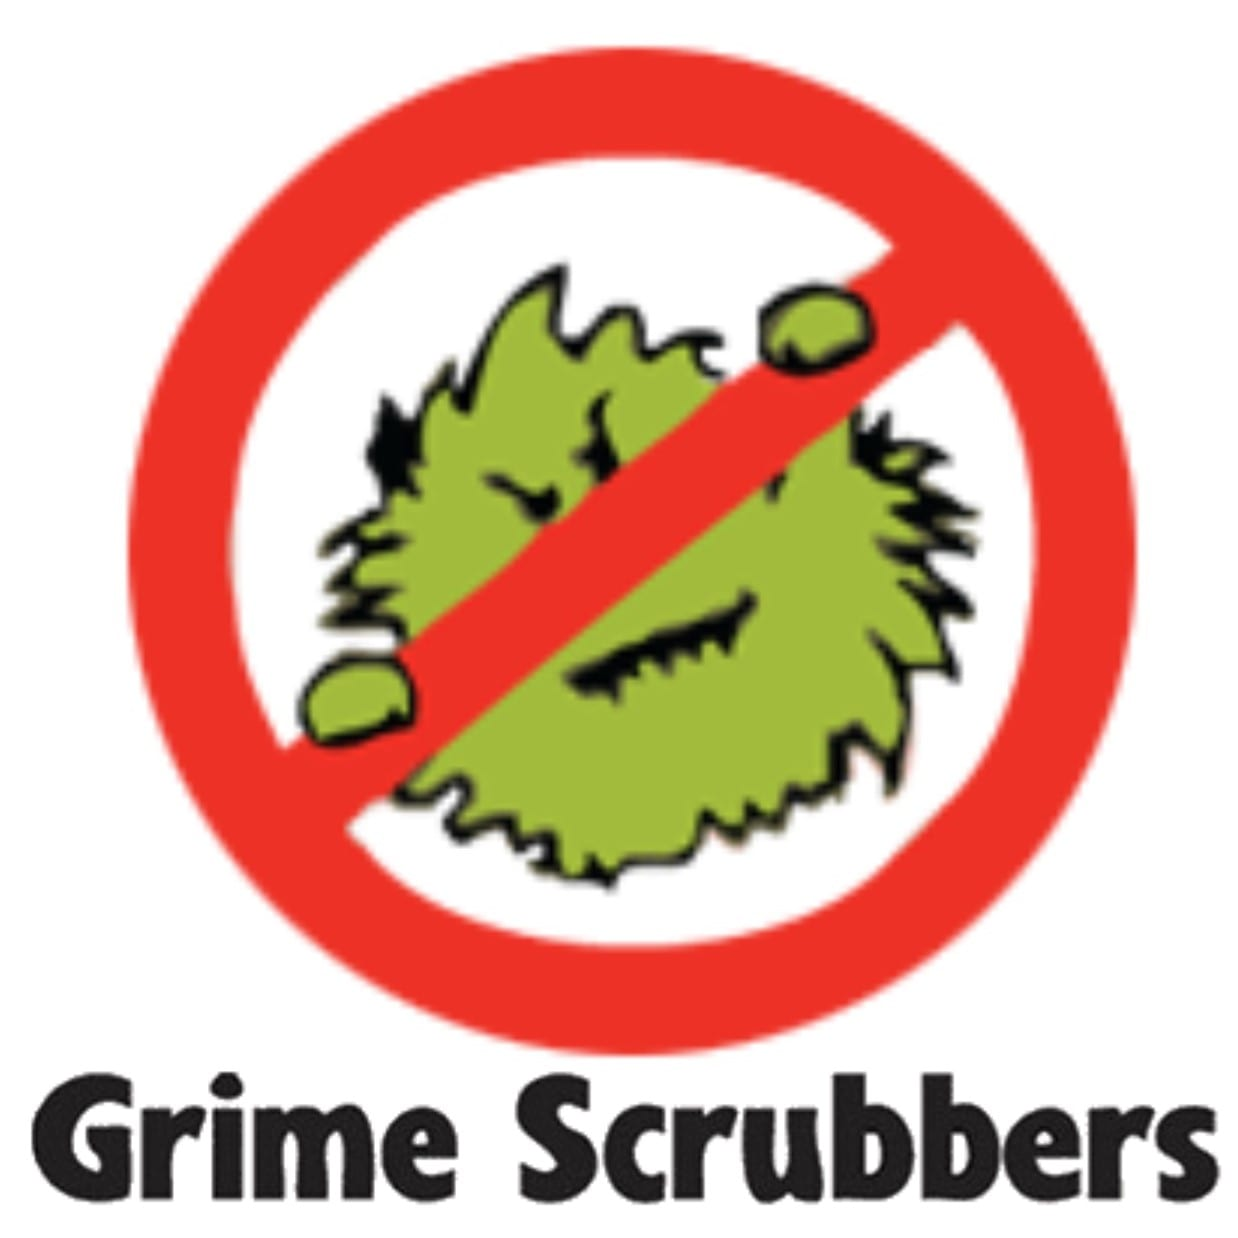 Grime Scrubbers - Advertising Agency Springfield Missouri